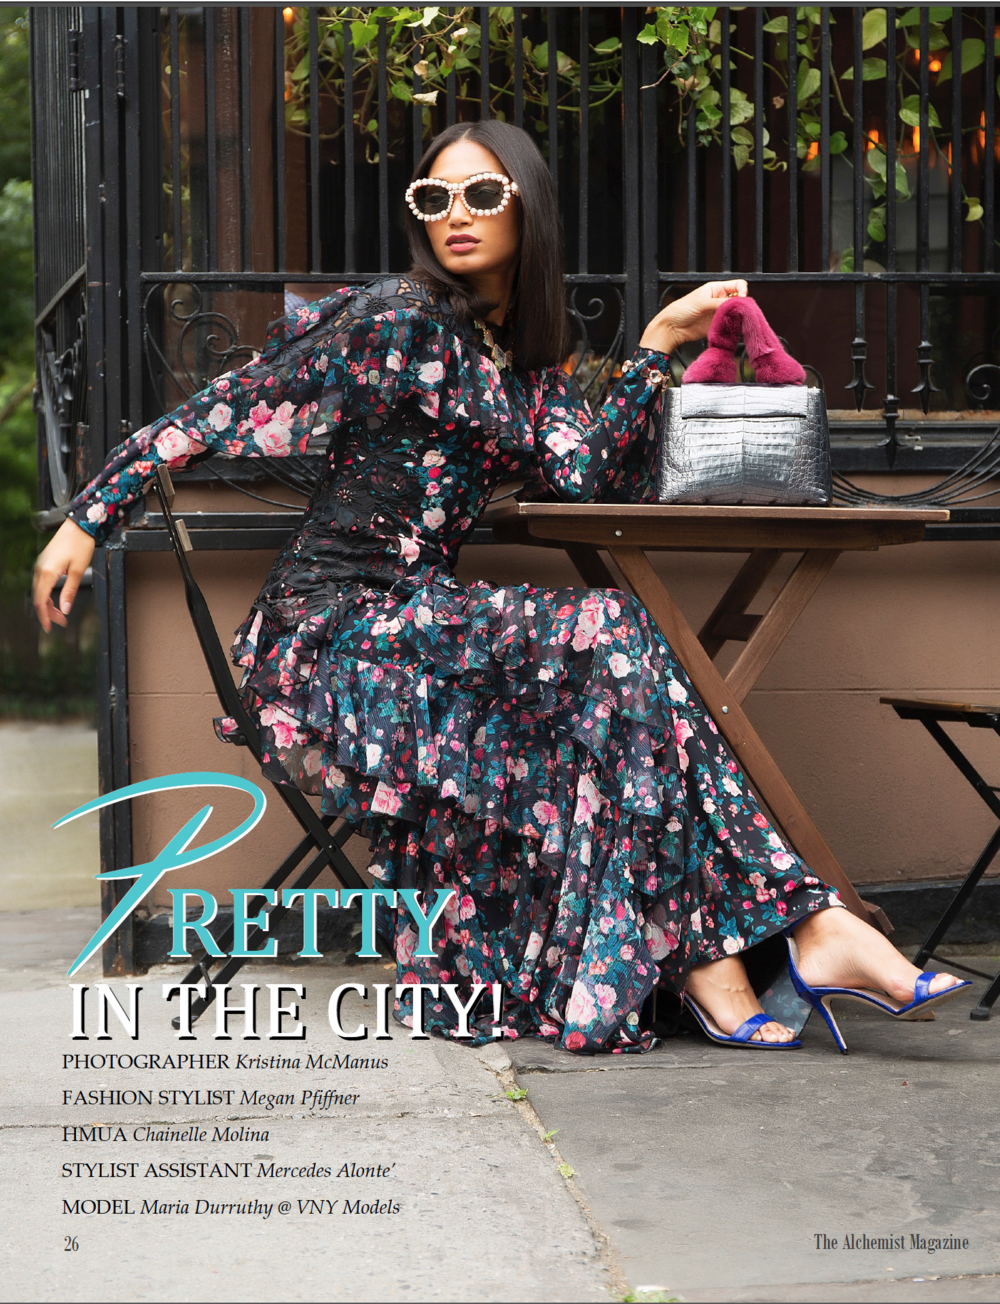 Pretty in the City for The Alchemist Magazine